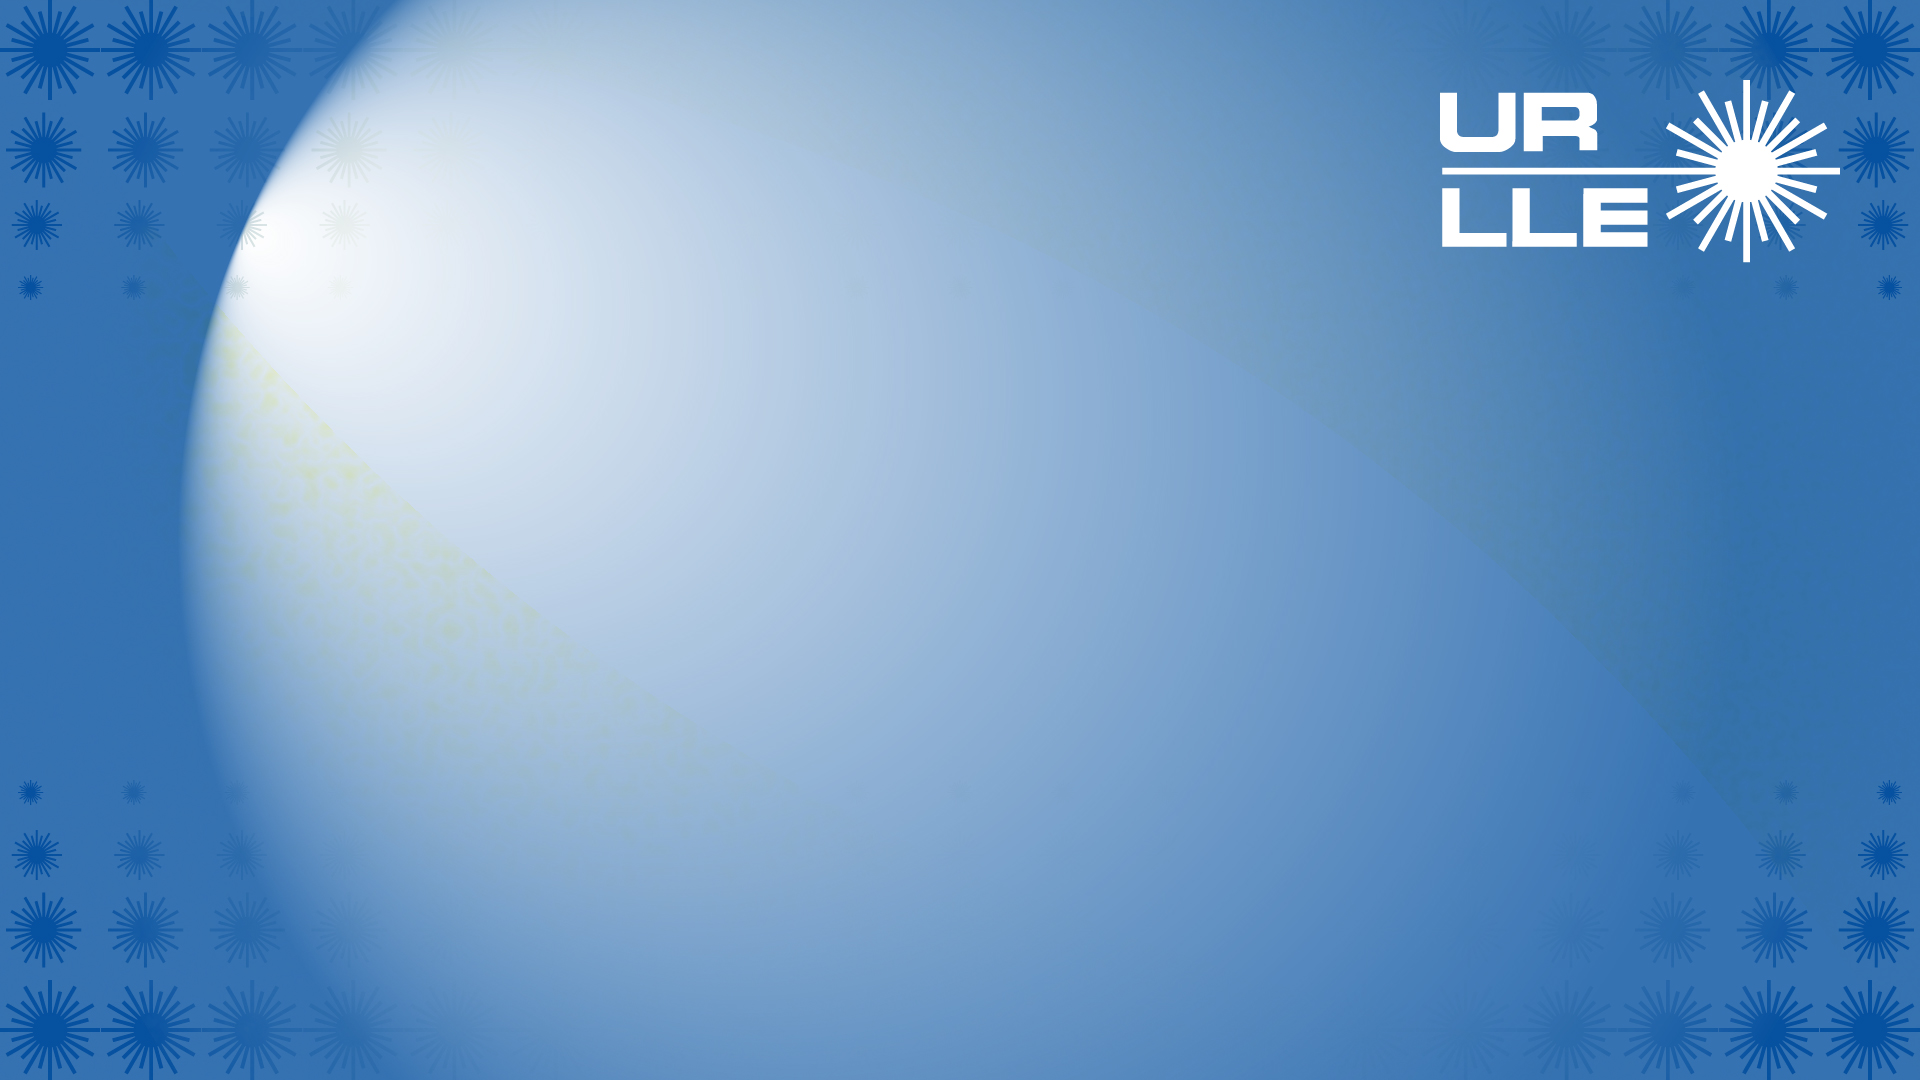 LLE Zoom background, blue with logos